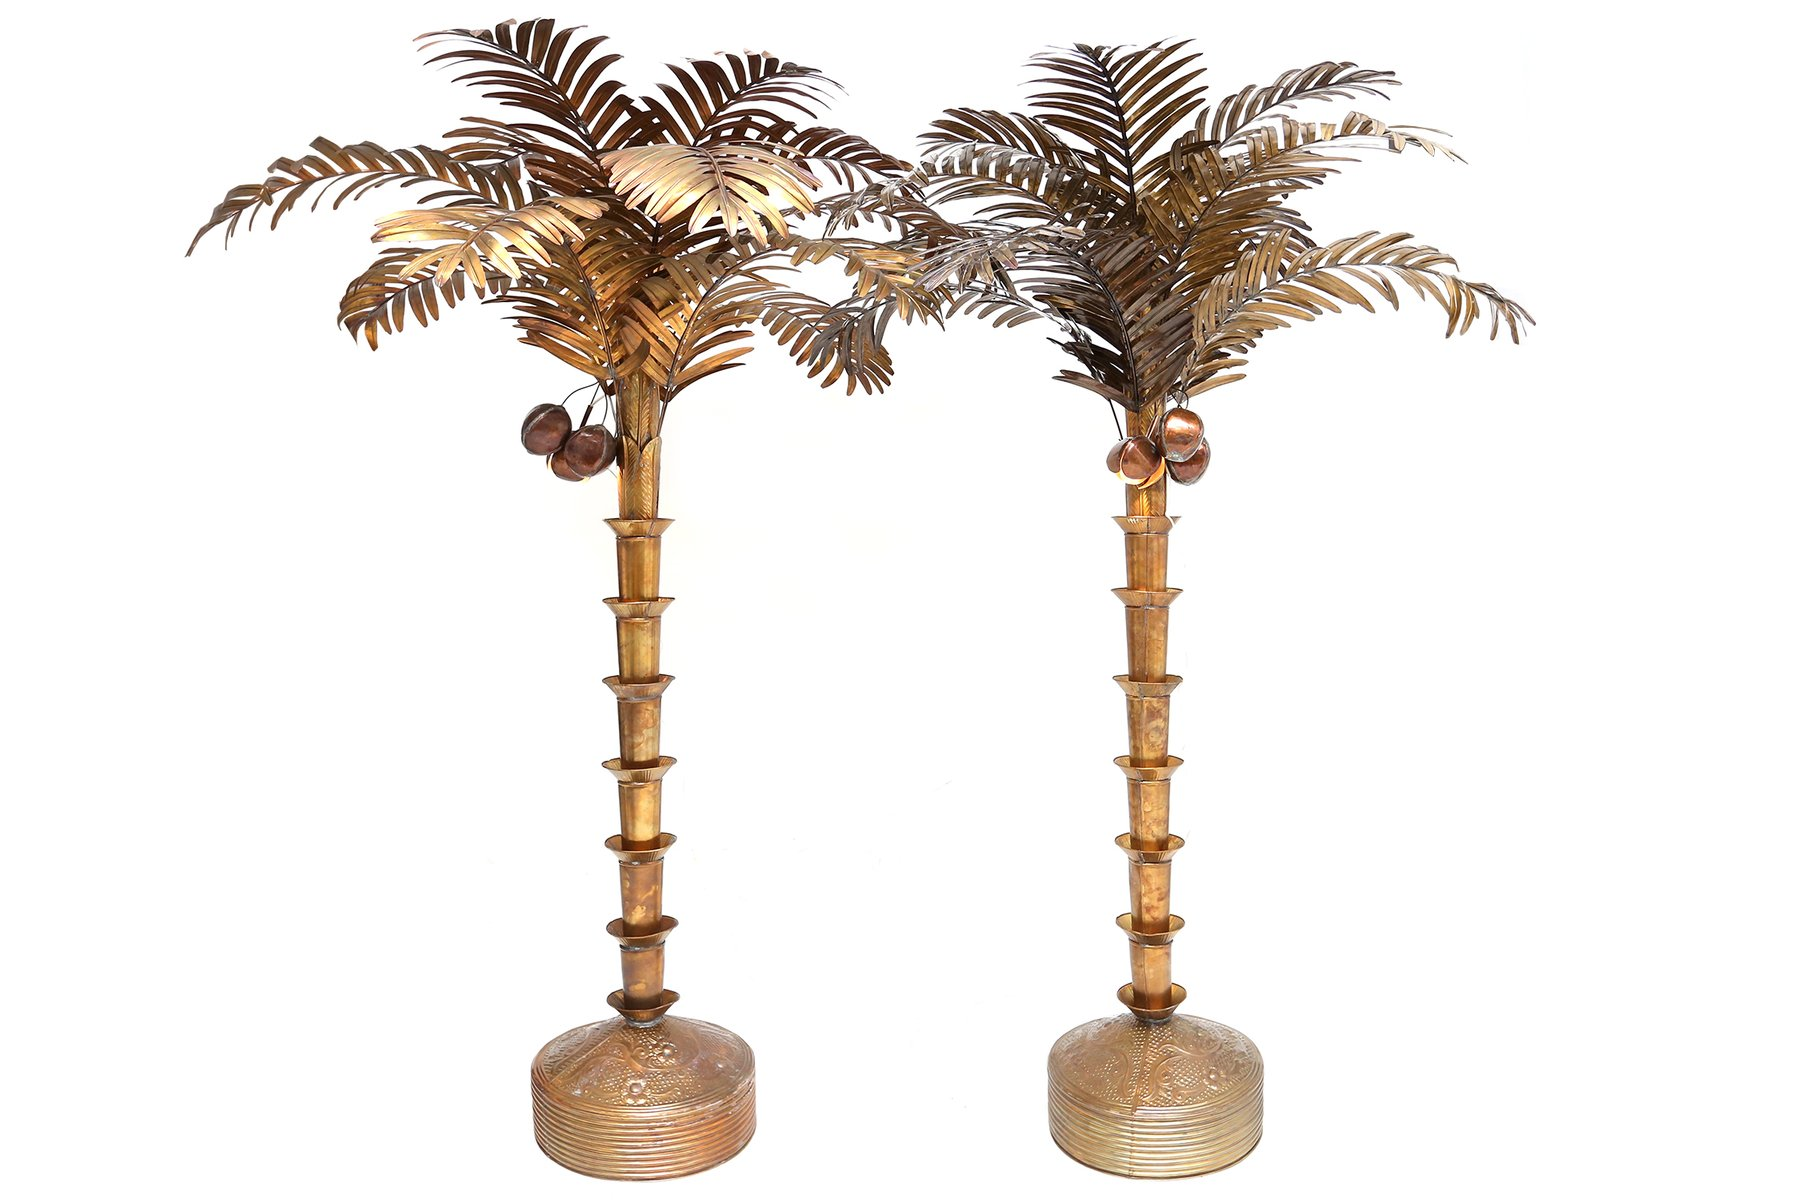 Brass plated palm tree floor lamp 1980s for sale at pamono for Tree floor lamp uk